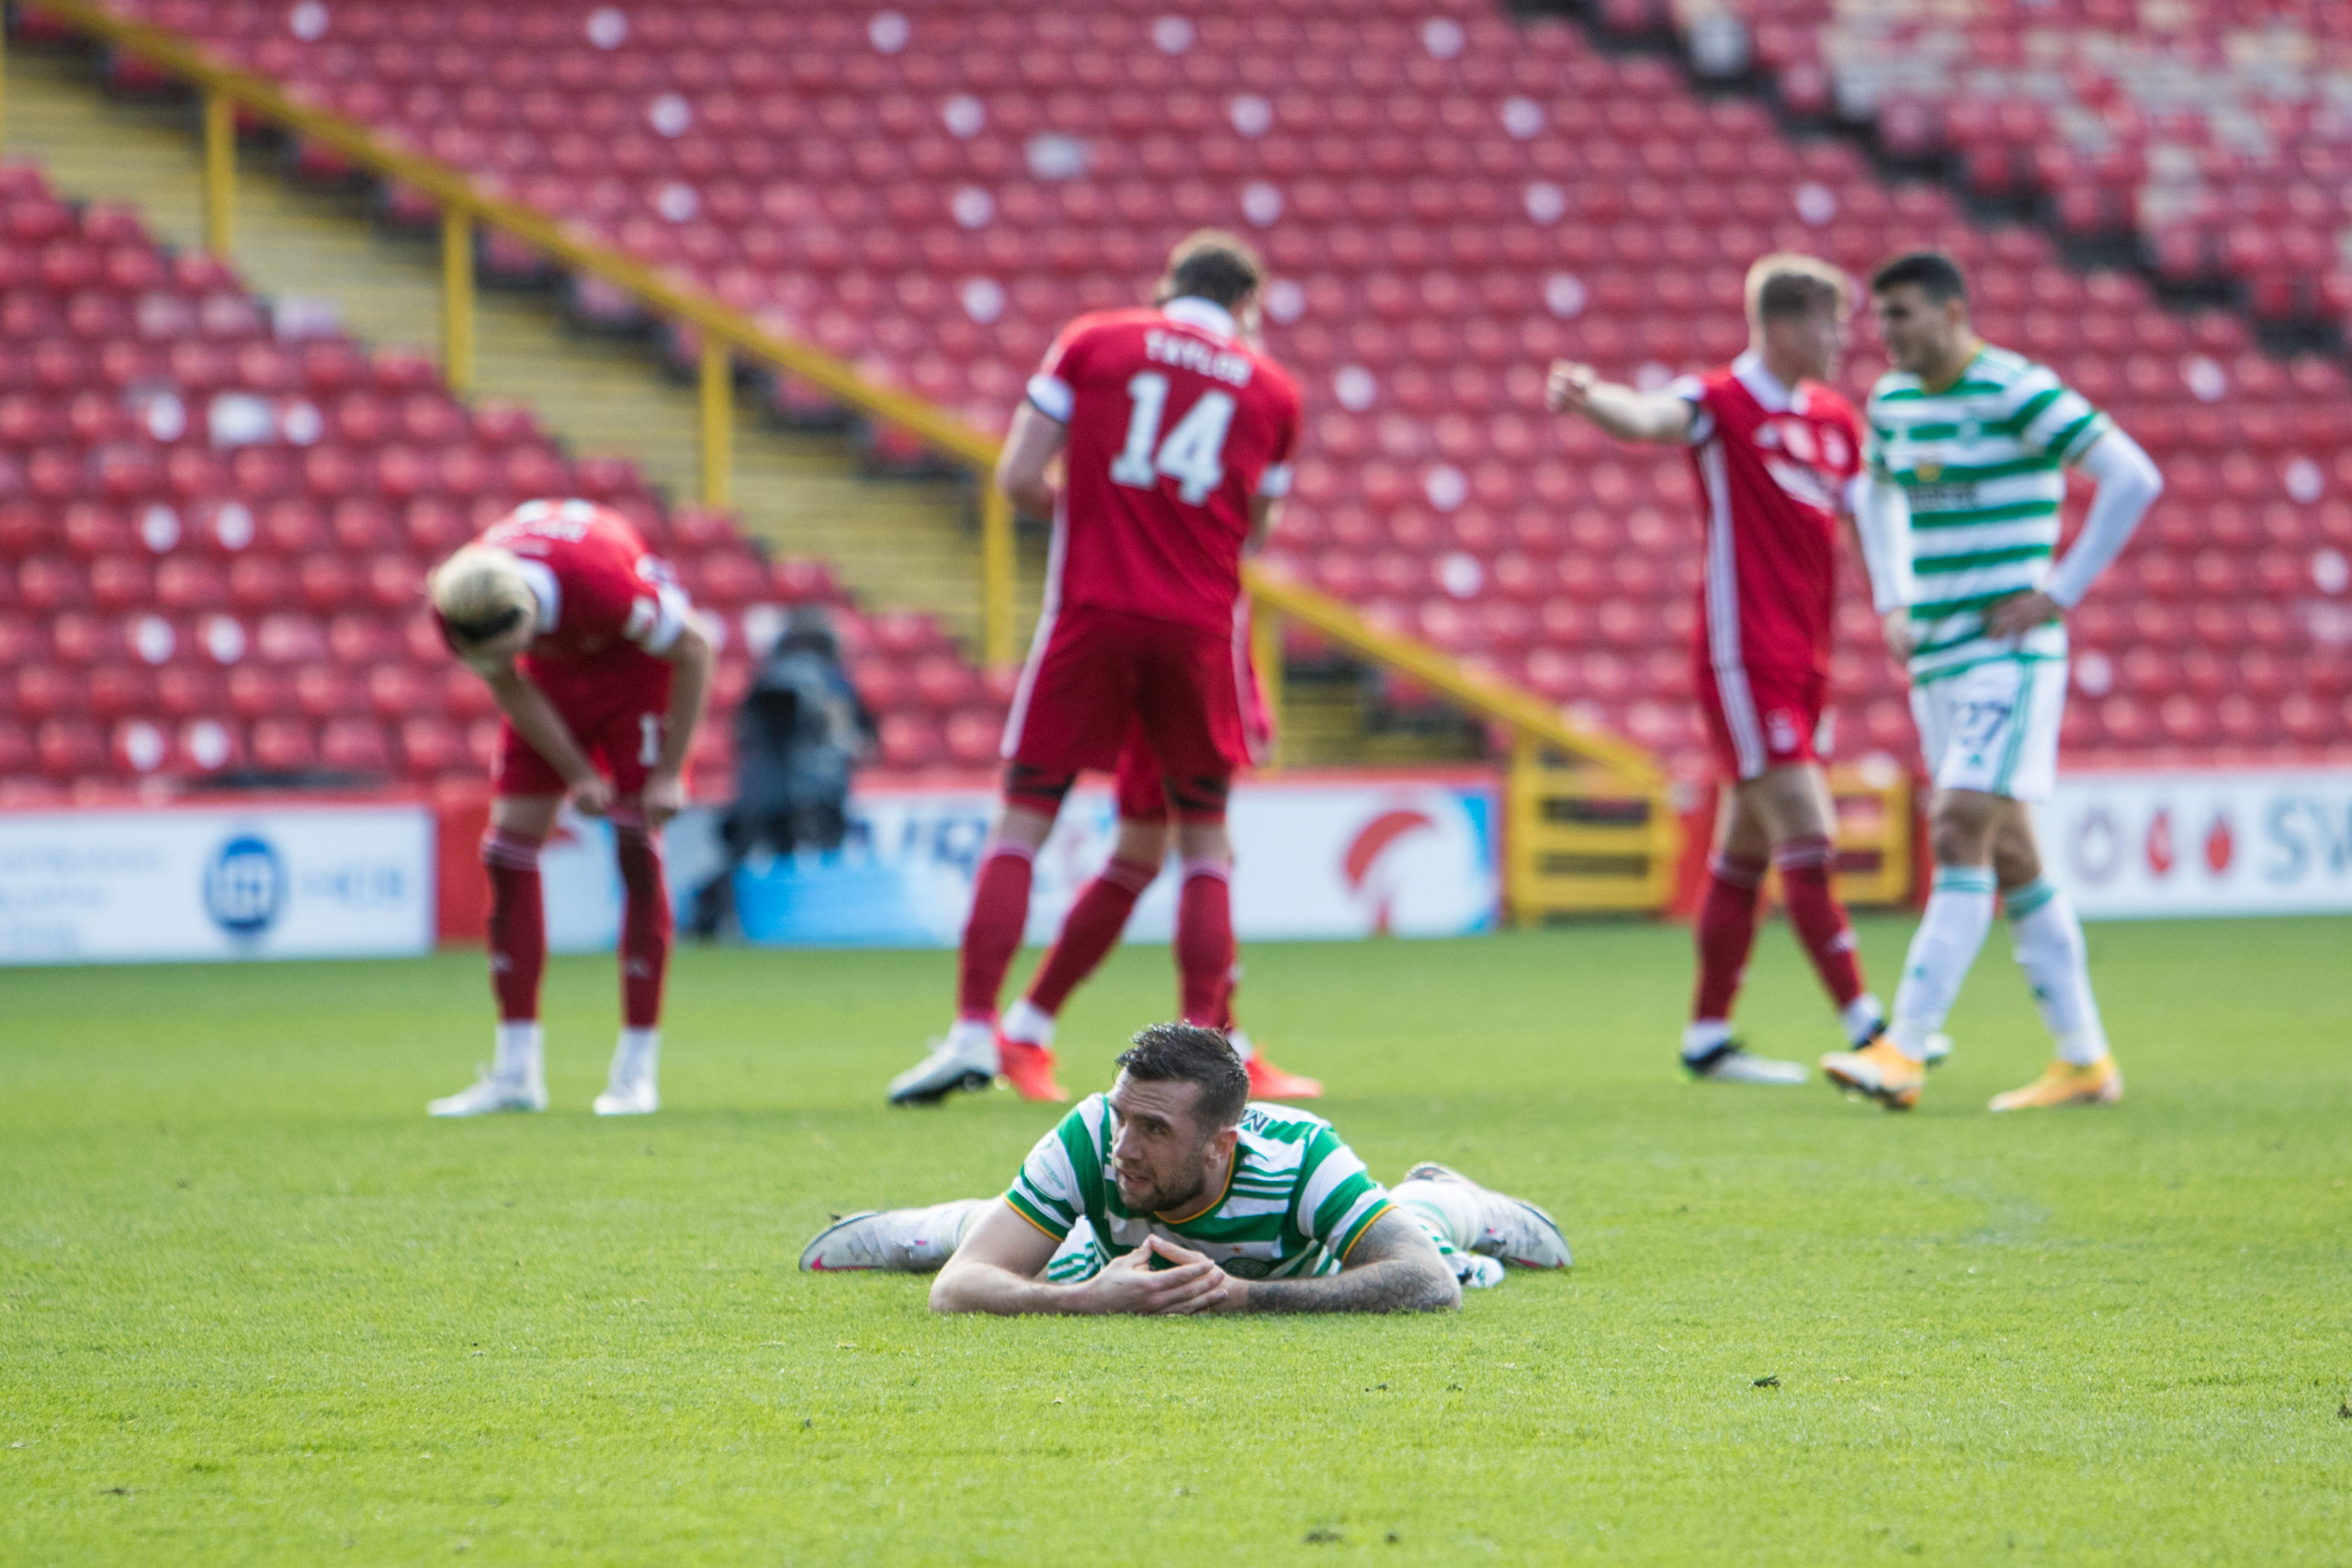 Celtic defender Shane Duffy after conceding vs Aberdeen